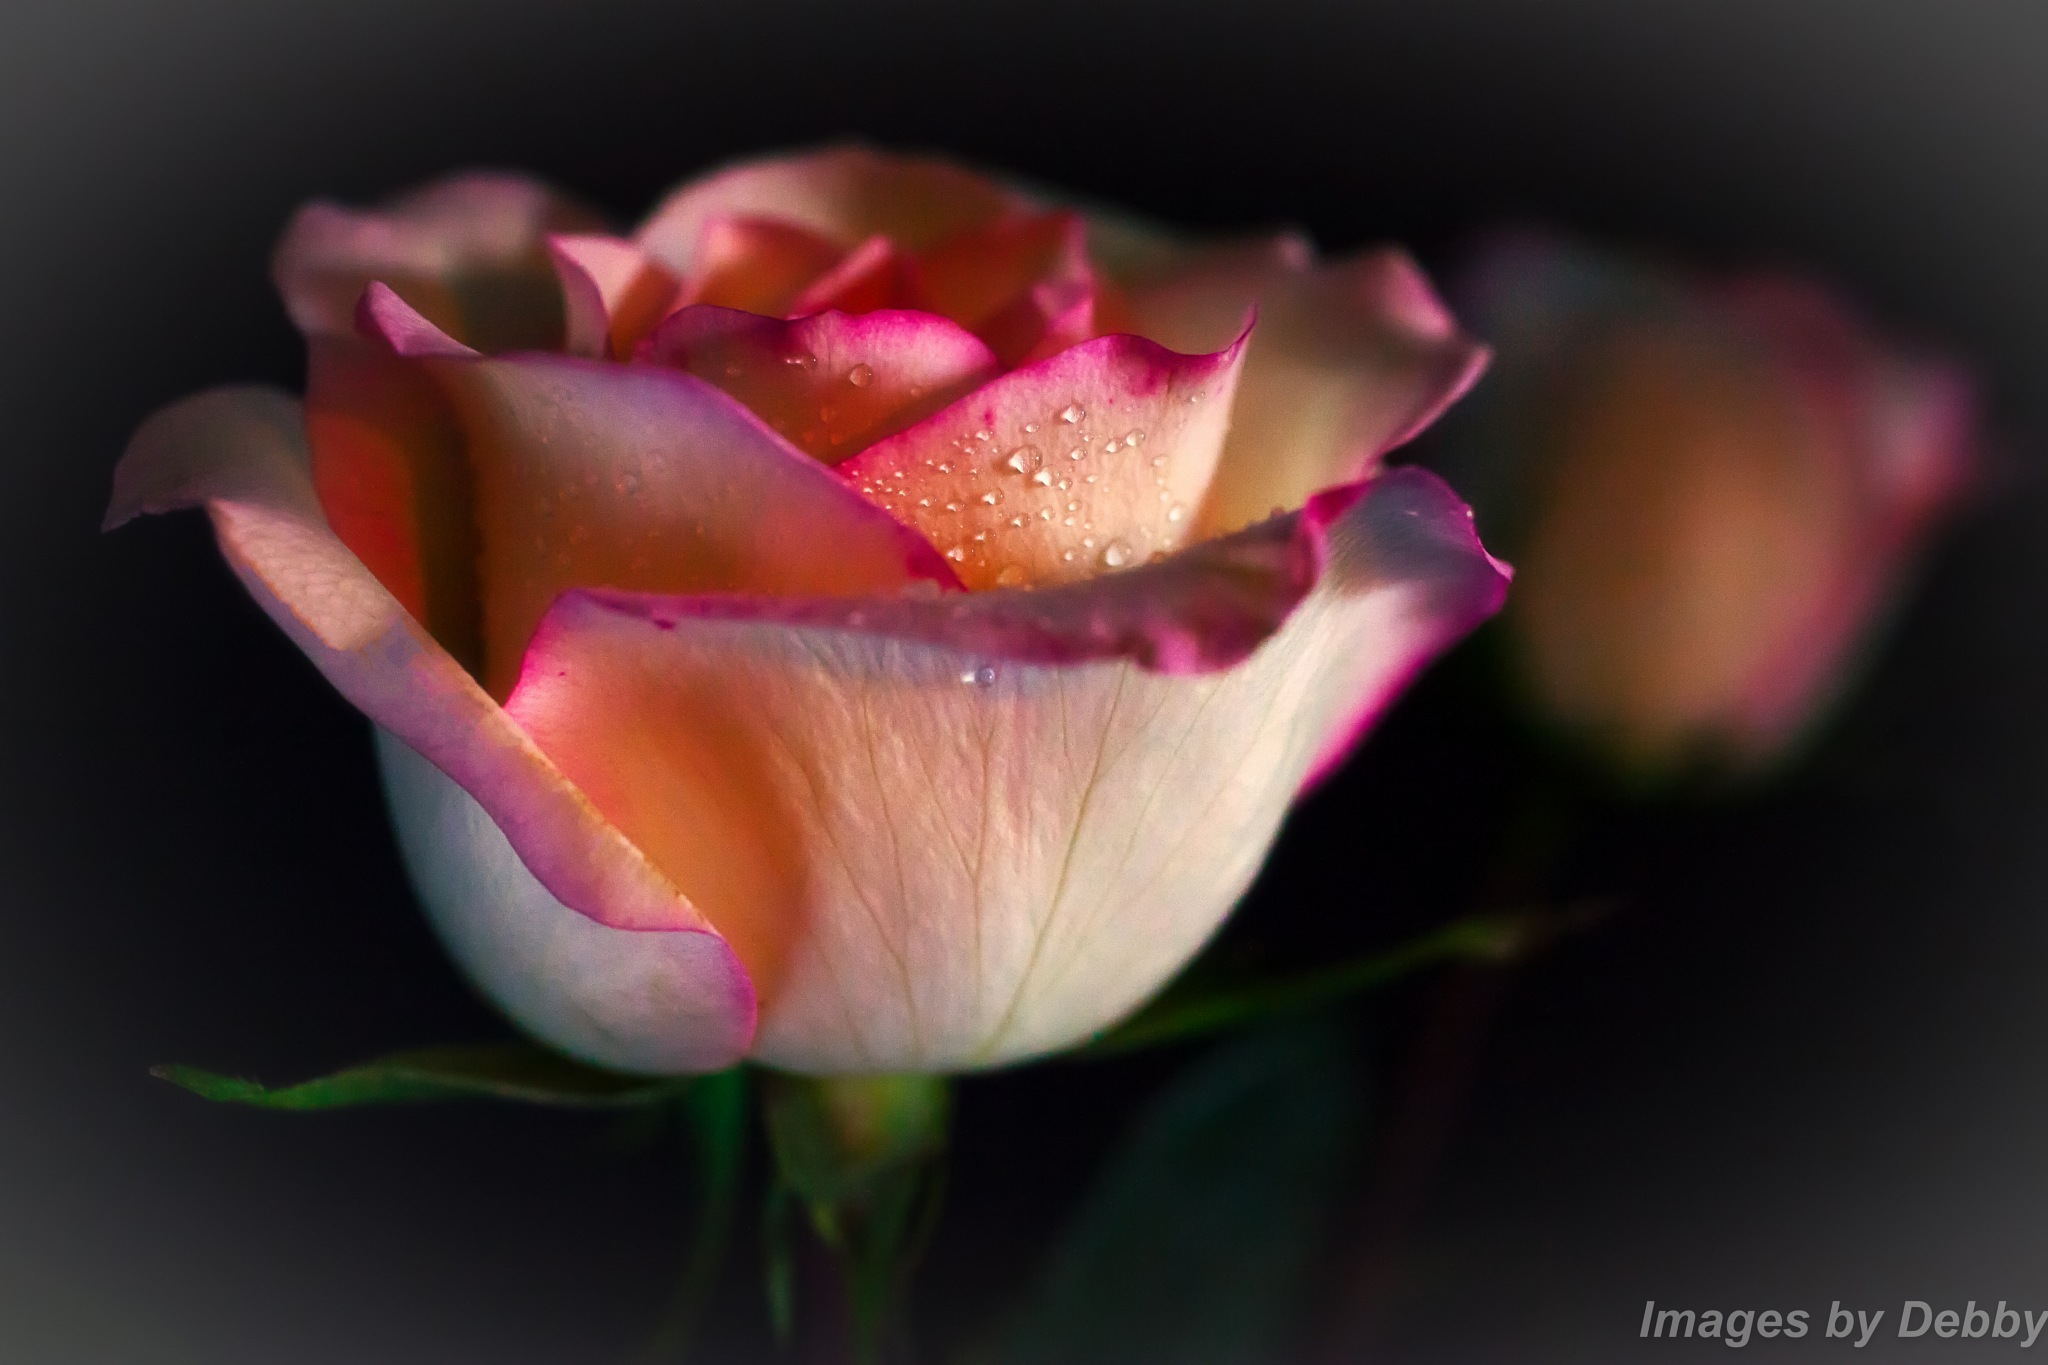 Mirror Image Rose by debbyfaz